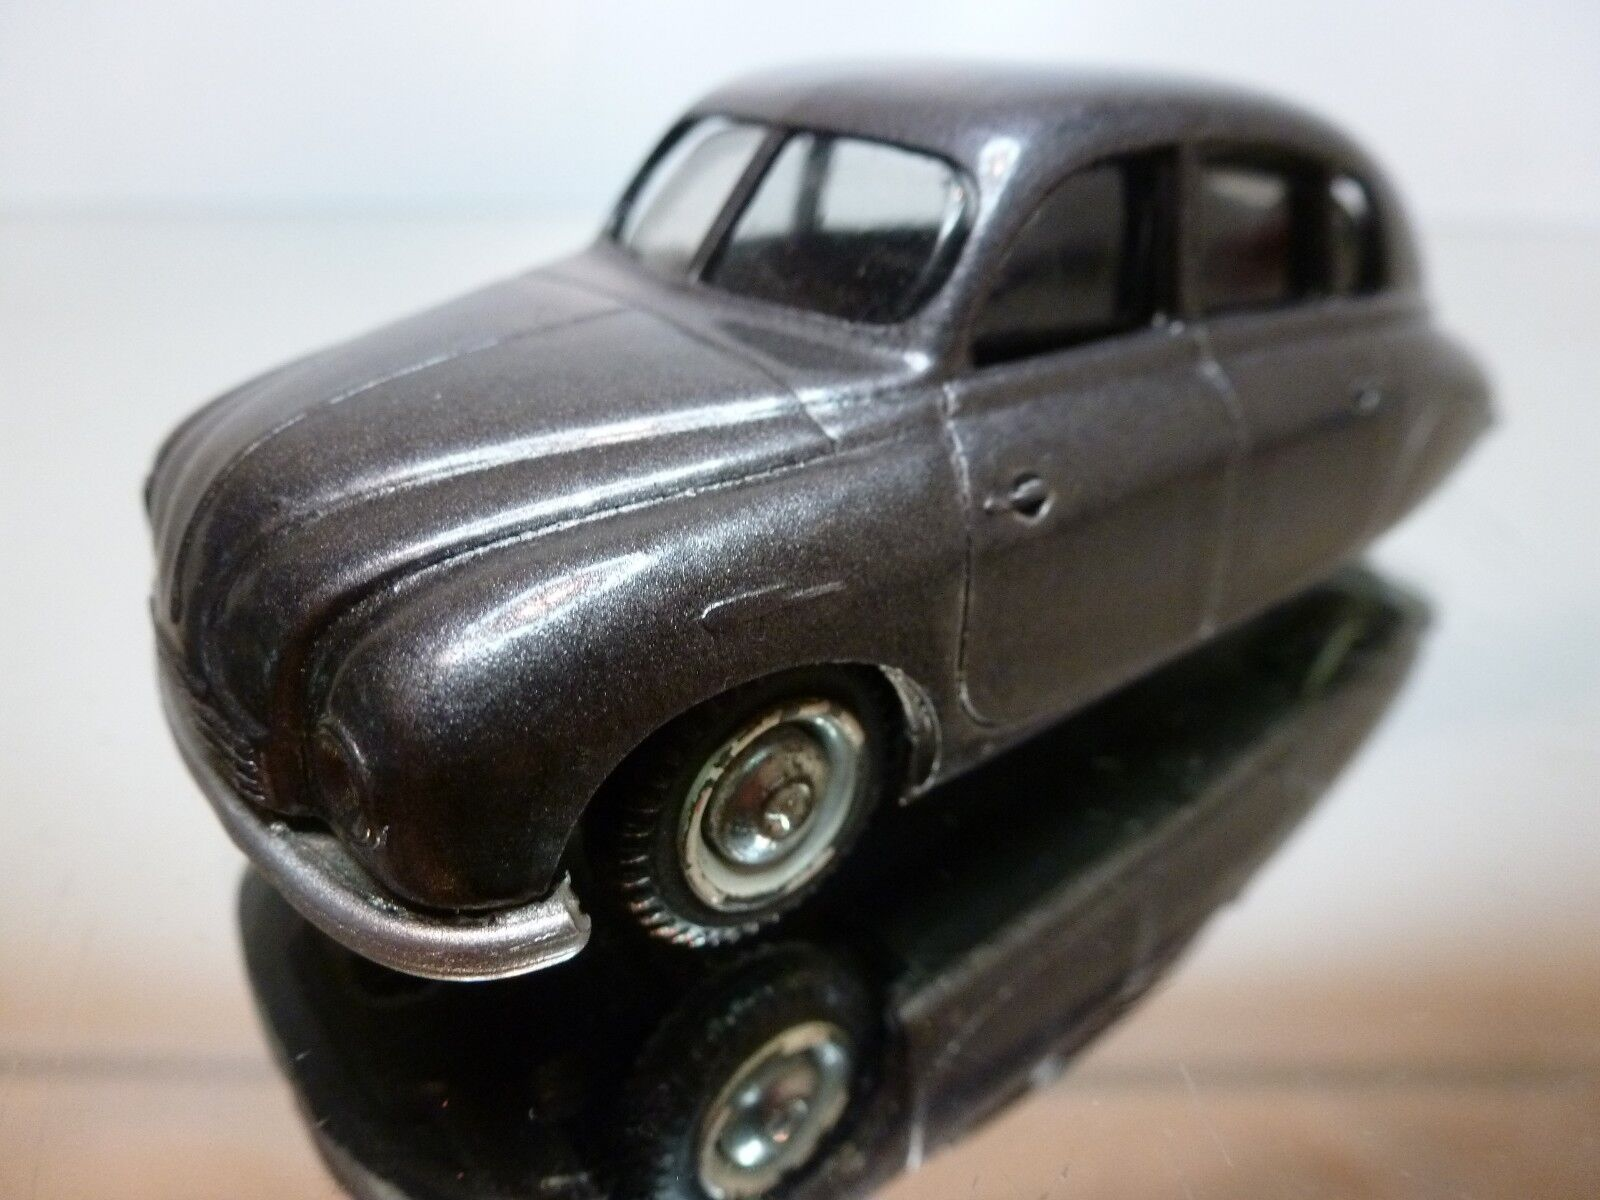 RETRO 43 TATRA PLAN T600 1949 - ANTHRACITE 1 43 - GOOD CONDITION - VERY RARE -12